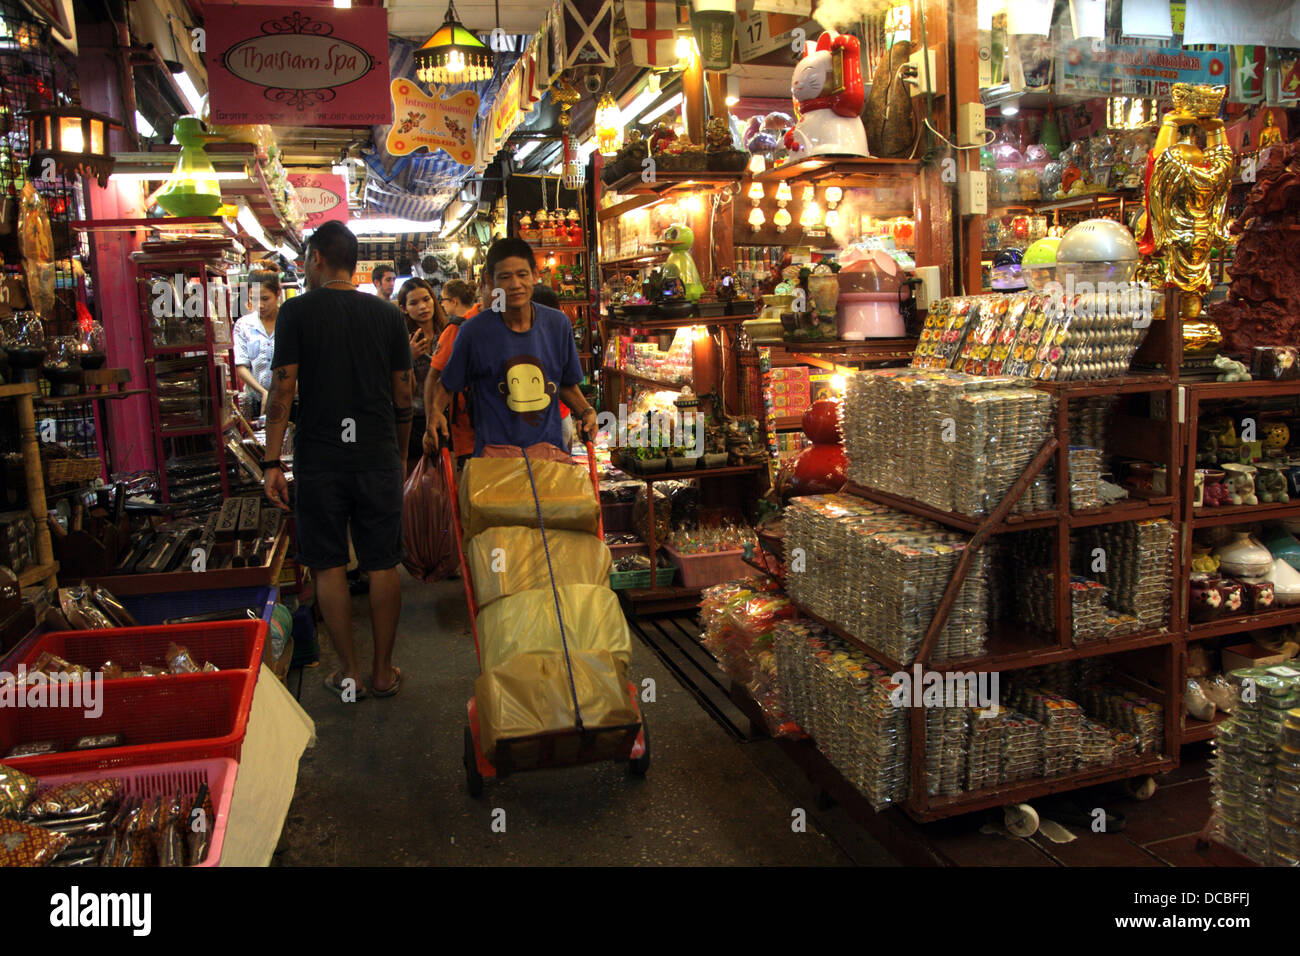 Home Decor Market Shops In Home And Decoration Shop Area In Chatuchak Weekend Market